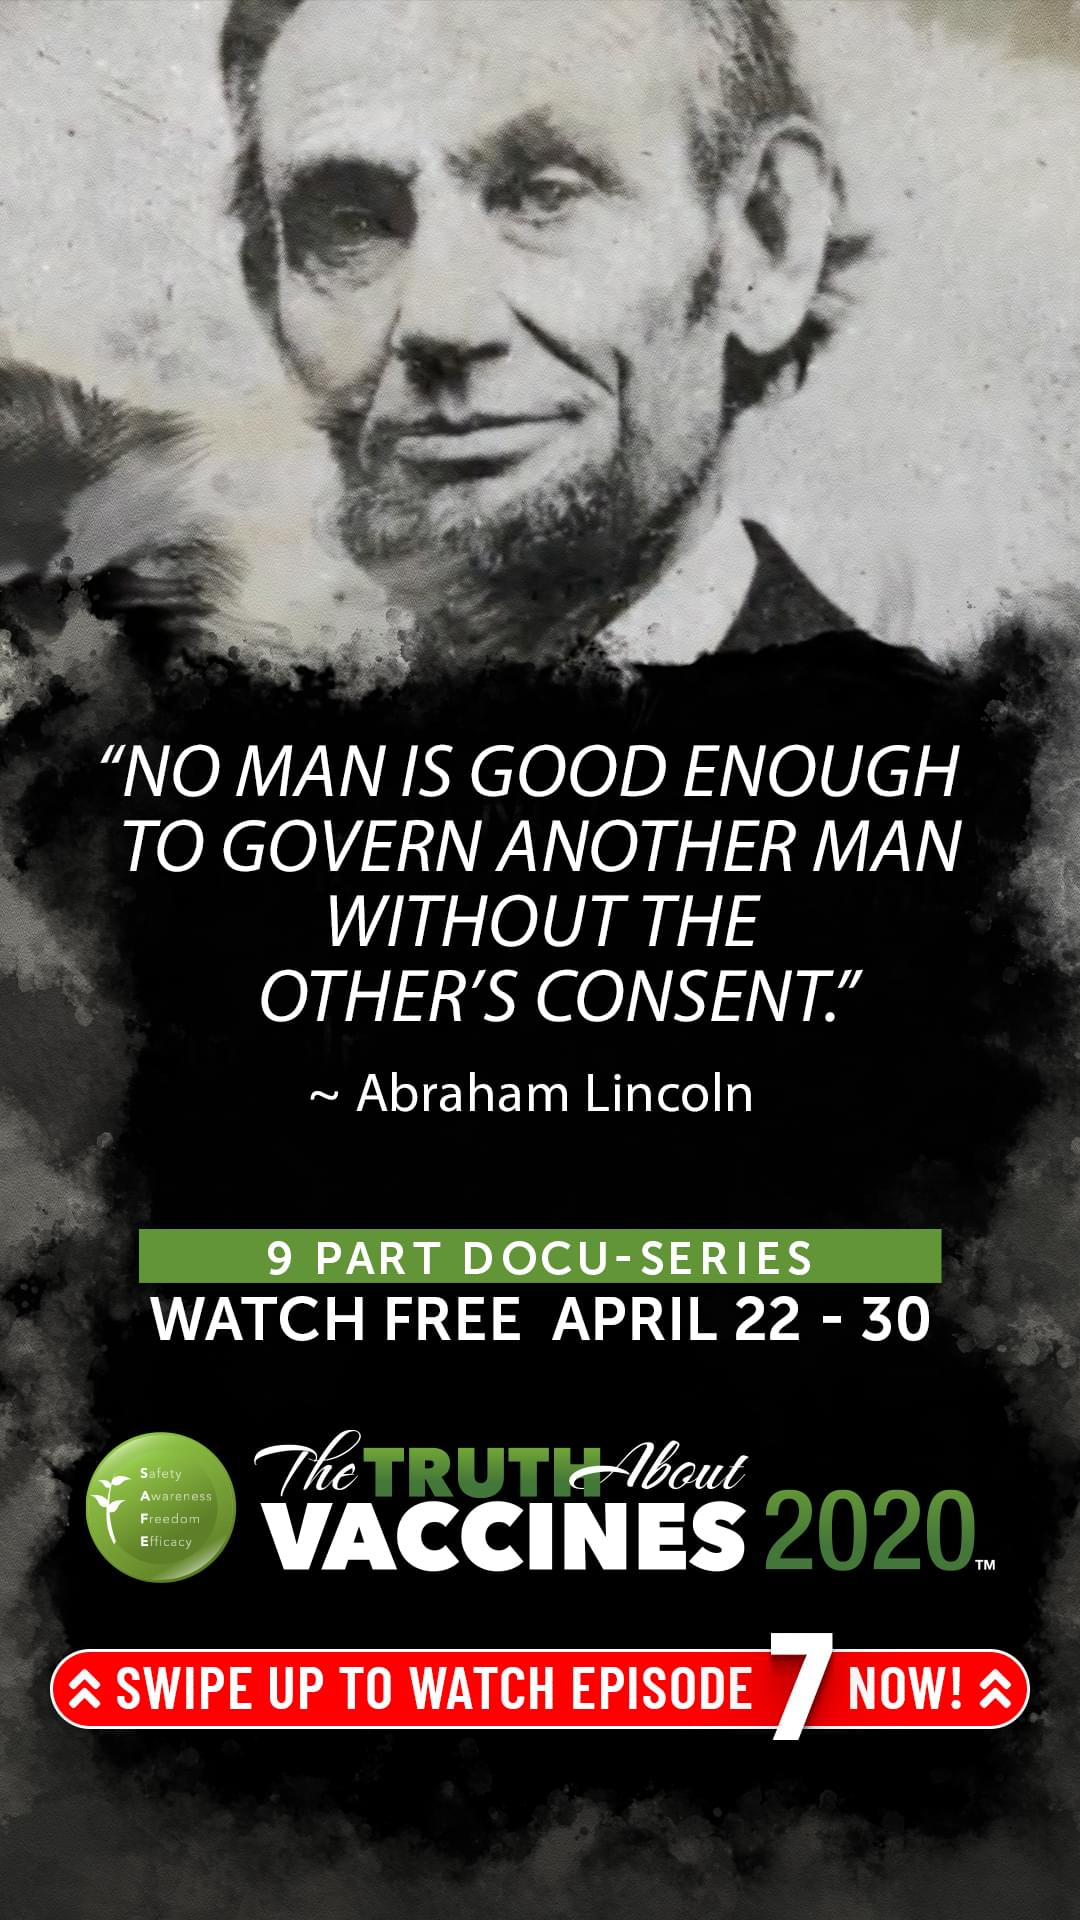 TTAV-ep07-Video_Quotes-Abraham_Lincoln-IG-1080X1920-SWIPE-min